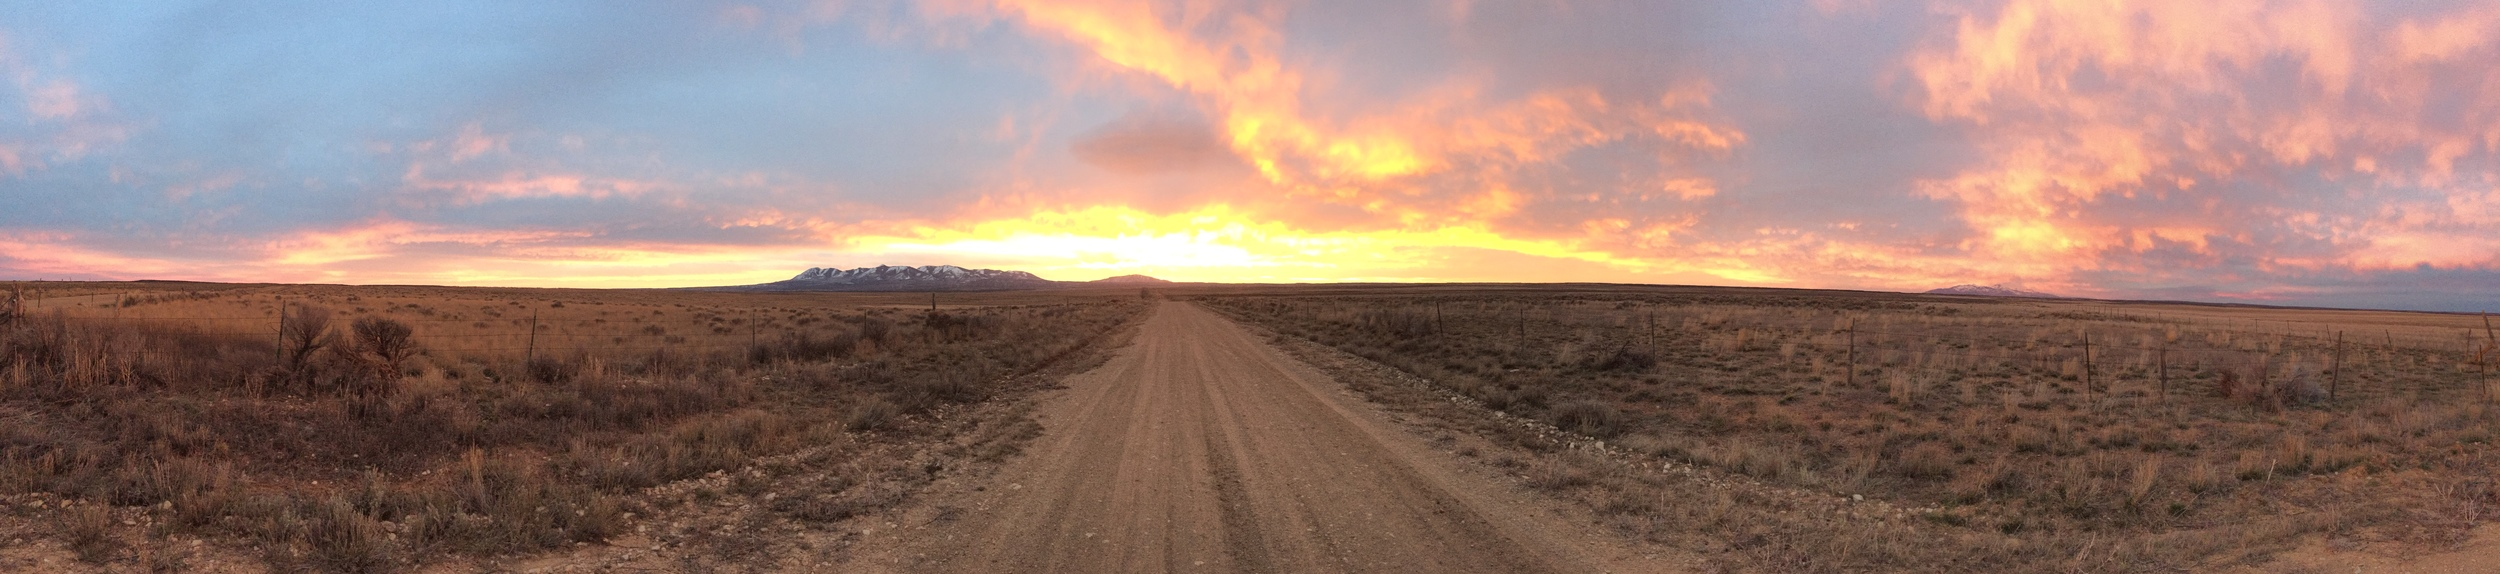 Sunset over the sagebrush flats the first night i tried for Gunnison Sage Grouse in Utah